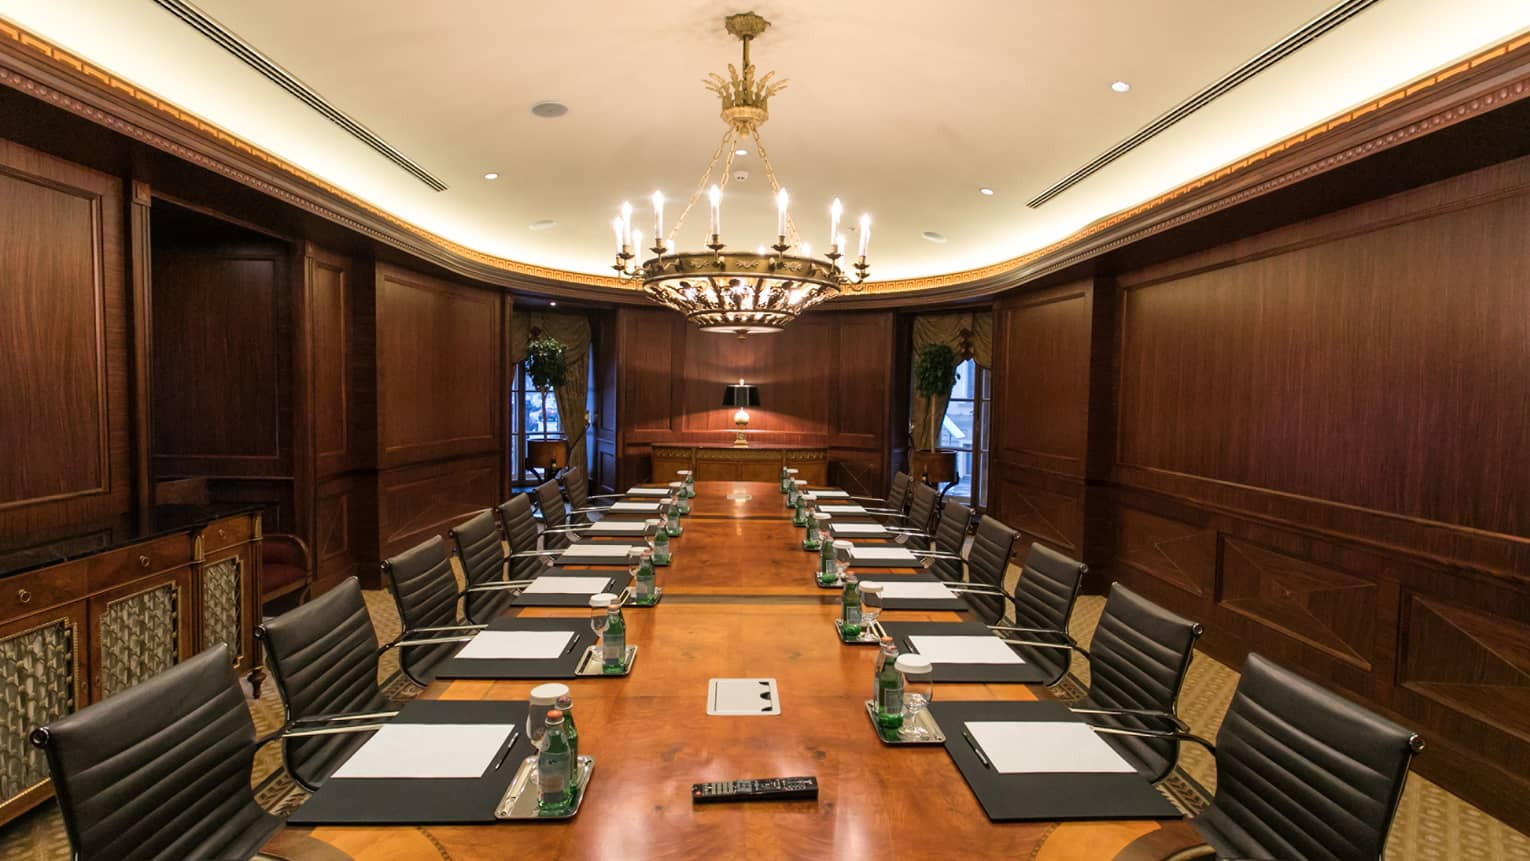 Meeting room with wood panel walls, long boardroom table lined with leather chairs under lamp